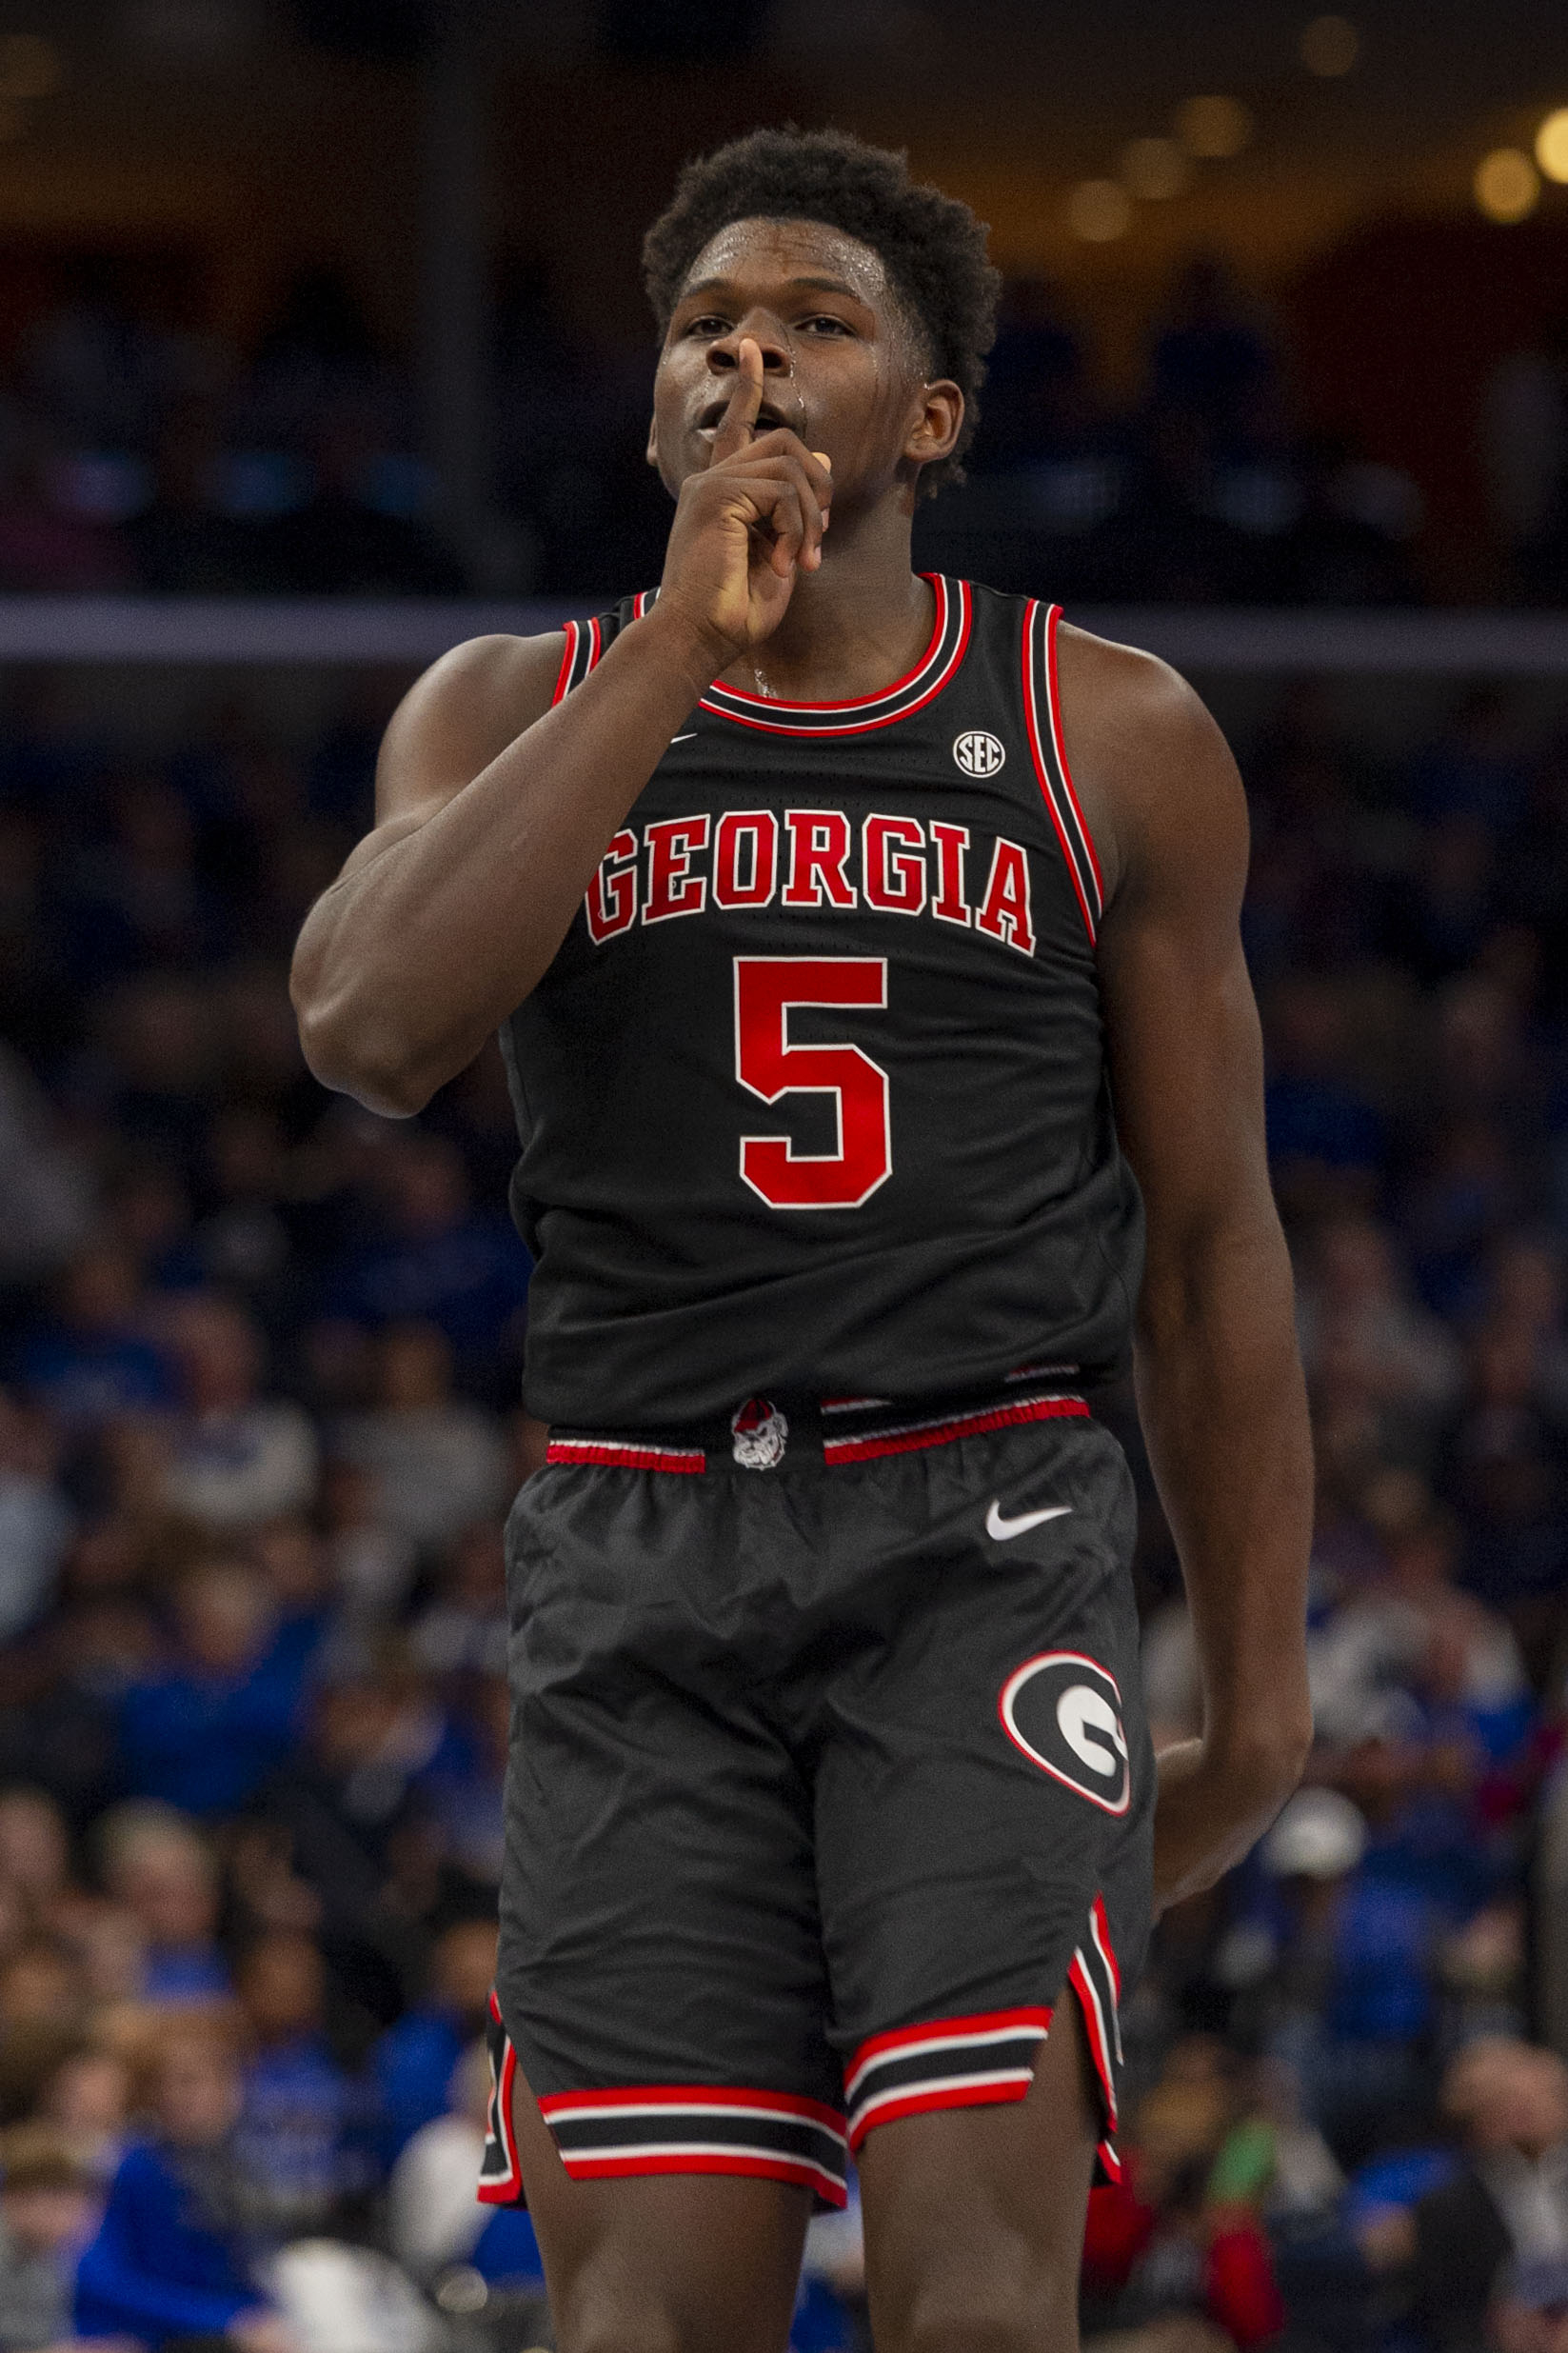 NCAA Basketball: Georgia at Memphis